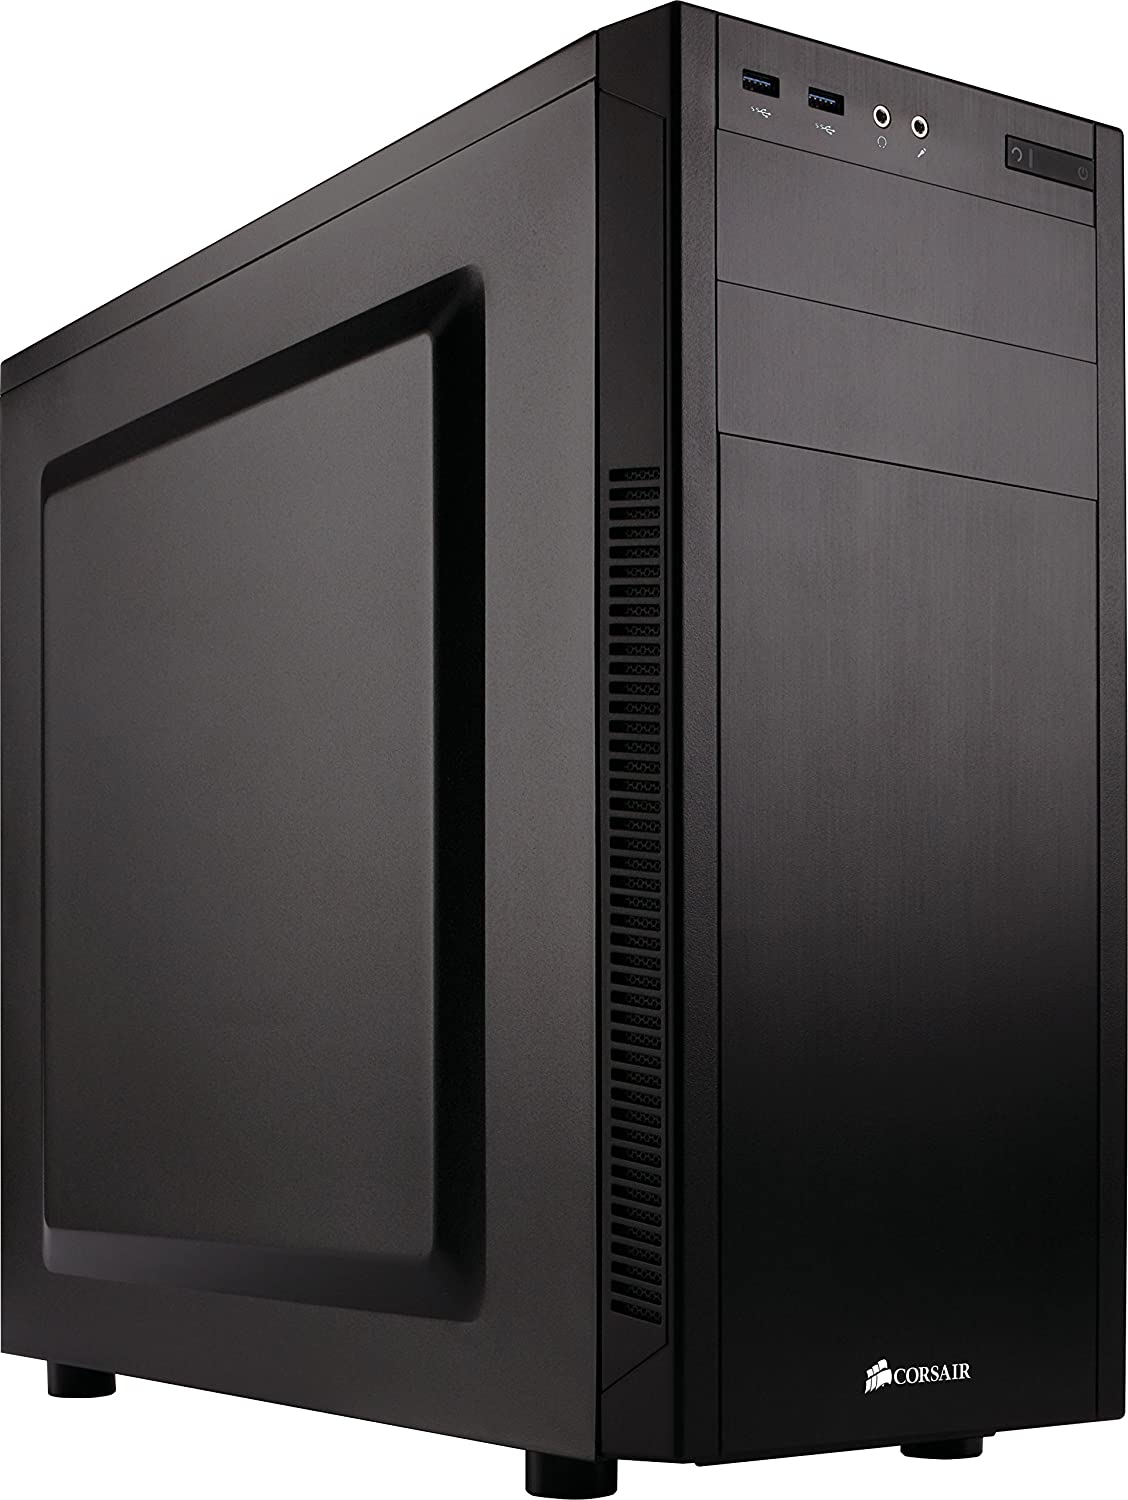 Corsair CC-9011077-WW Carbide Series 100R Silent Edition Quiet Mid Tower Case